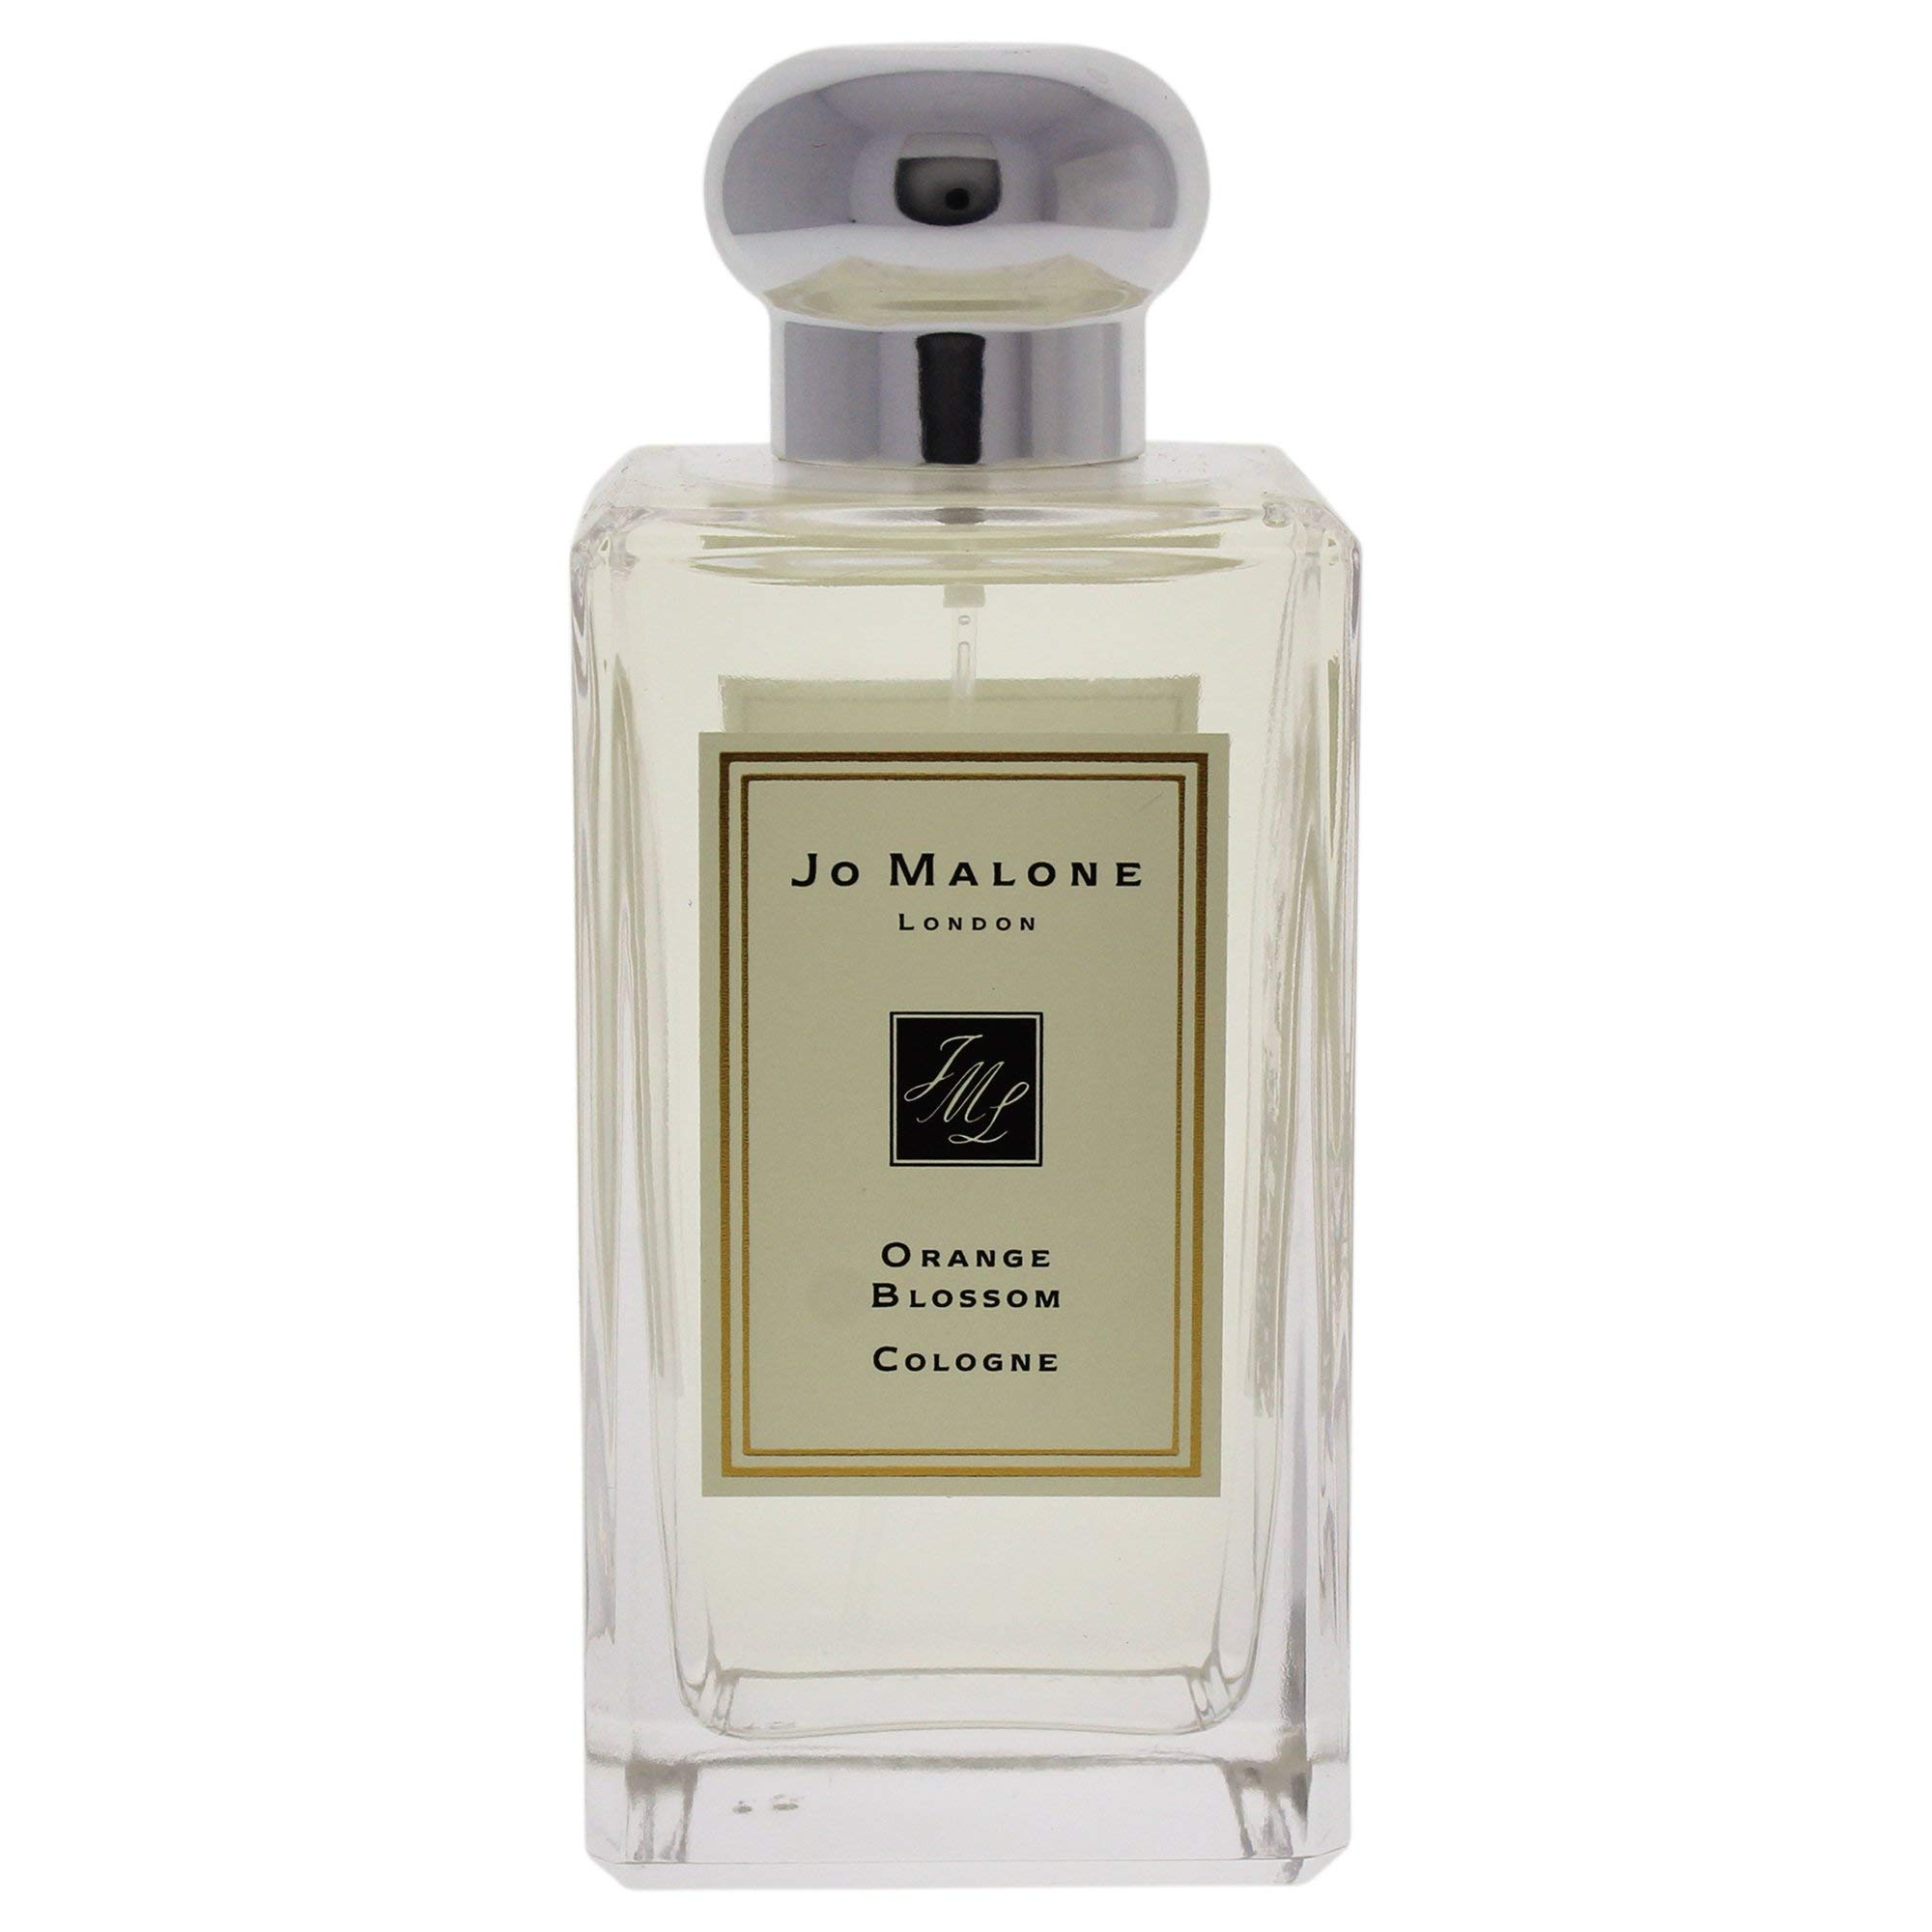 Jo Malone Orange Blossom Cologne Spray for Unisex, 3.4 Ounce Originally Unboxed by Jo Malone